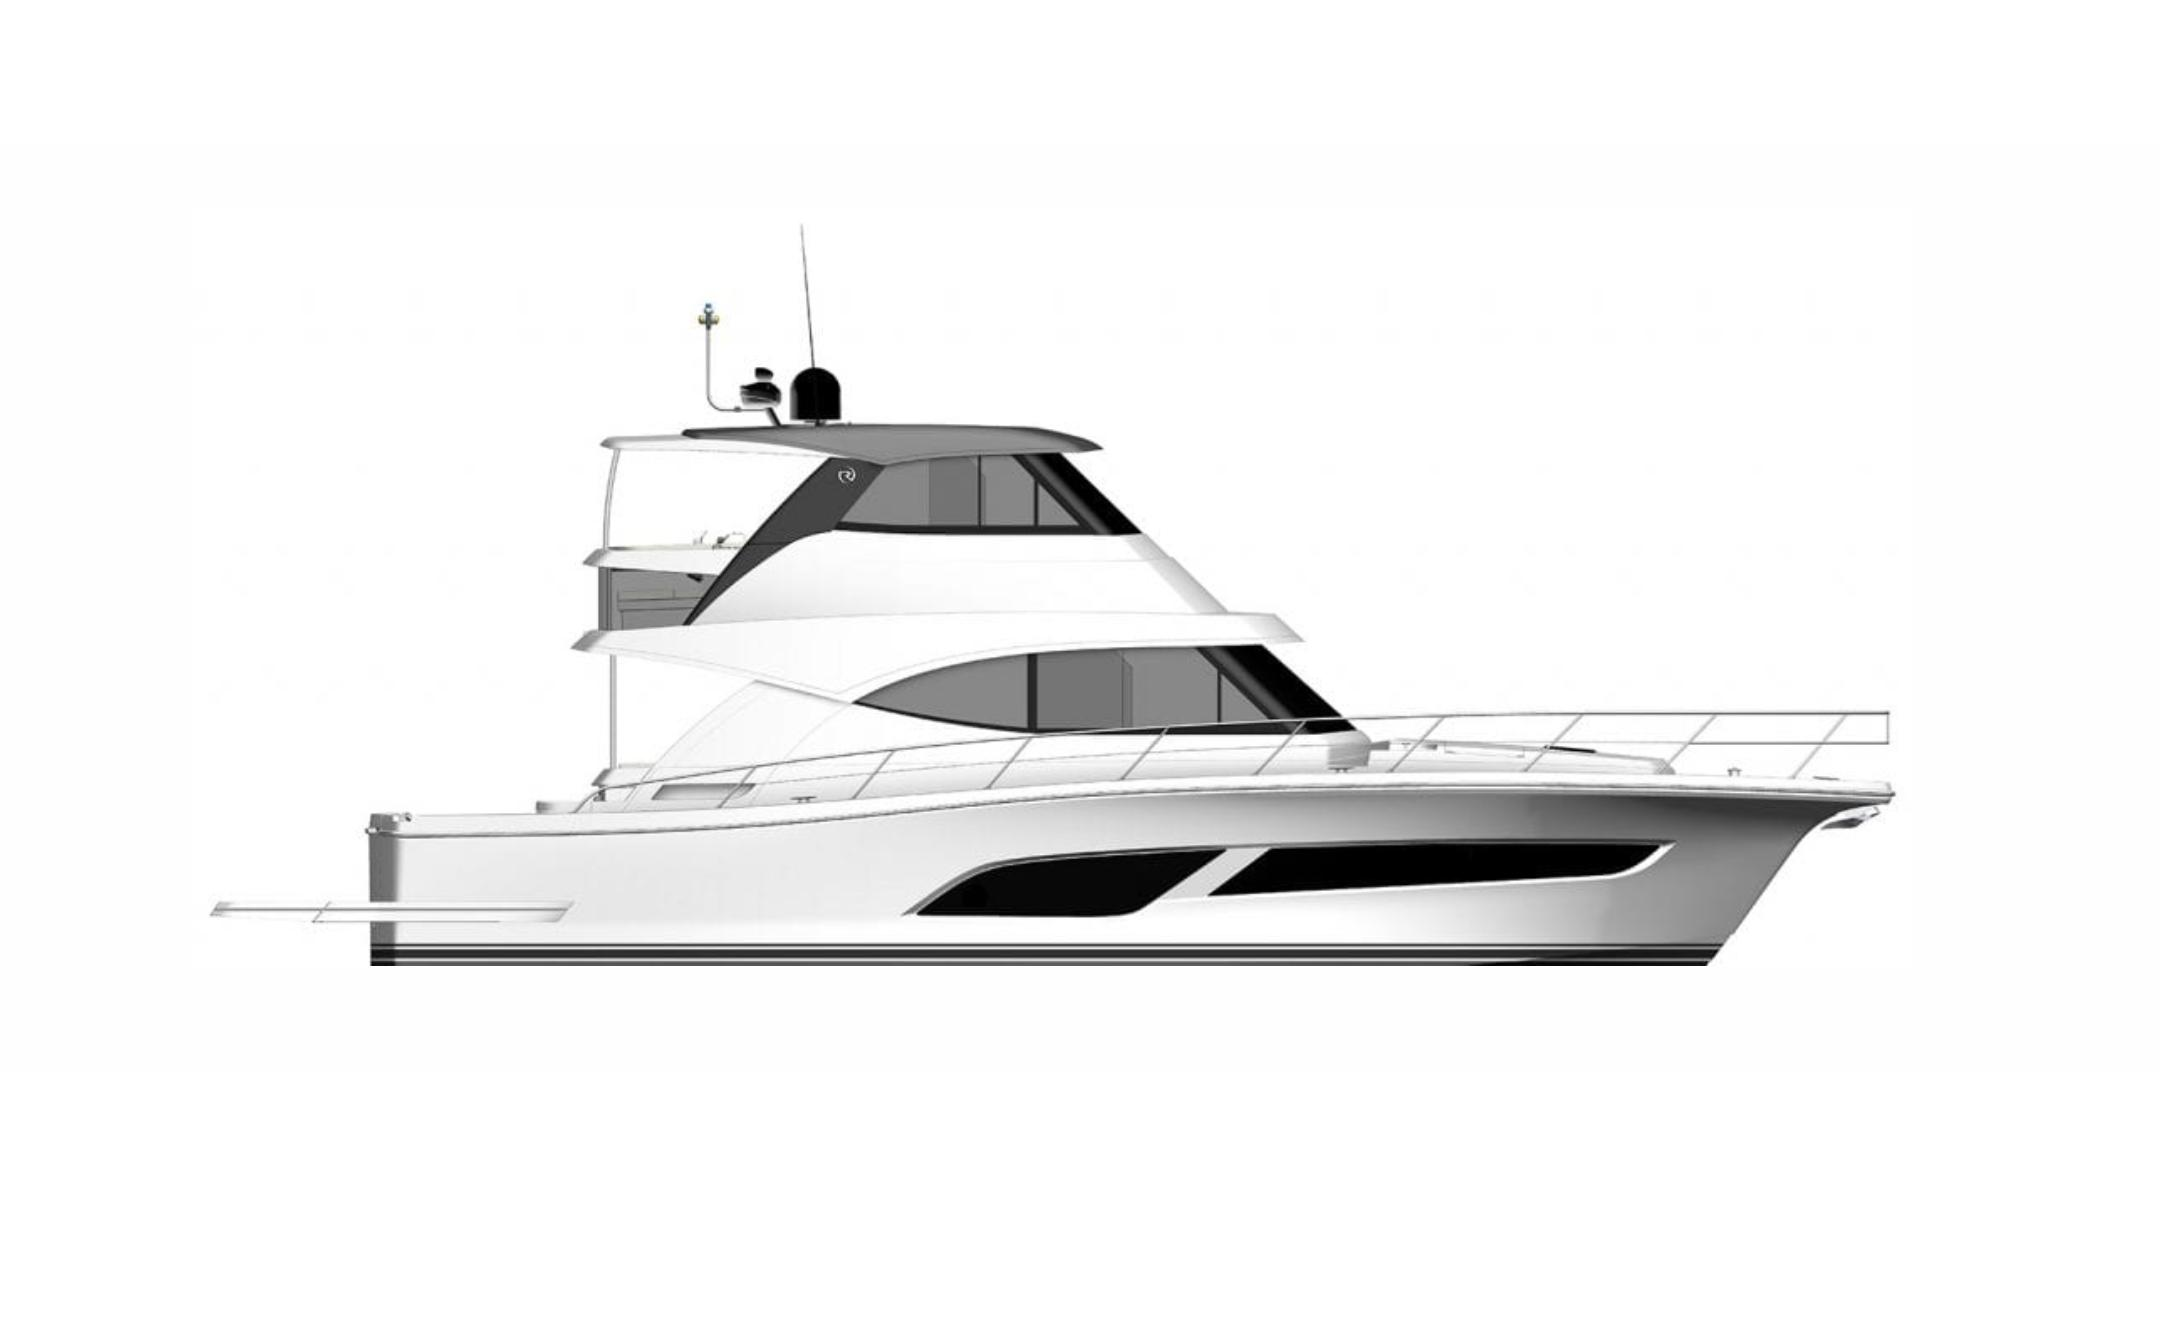 2021 Riviera 50 Sports Motor Yacht #R127 inventory image at Sun Country Coastal in Newport Beach